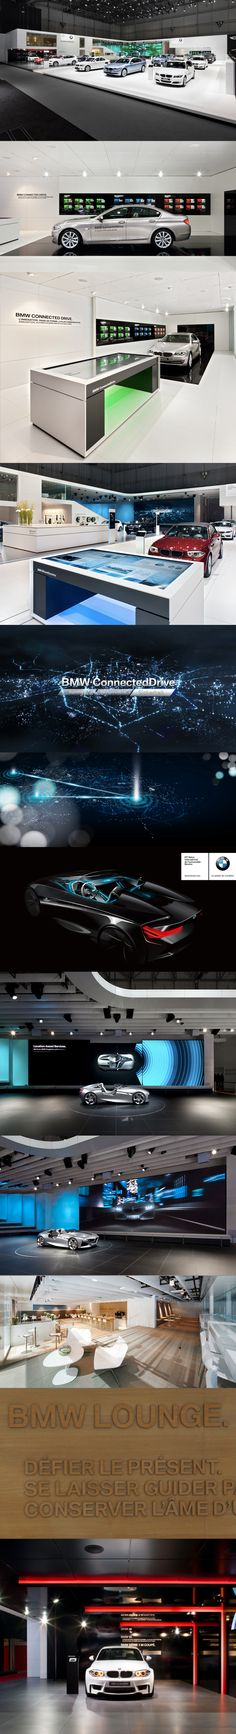 BMW Geneva 2011 | The BMW ConnectedDrive Innovations are the central focus of the entire BMW trade fair stand communications. BMW is presenting the future of intelligent Interaction between the vehicle, its passengers and the vehicle environment. The key was to make complex techology something that the public can experience and appreciate effectively.